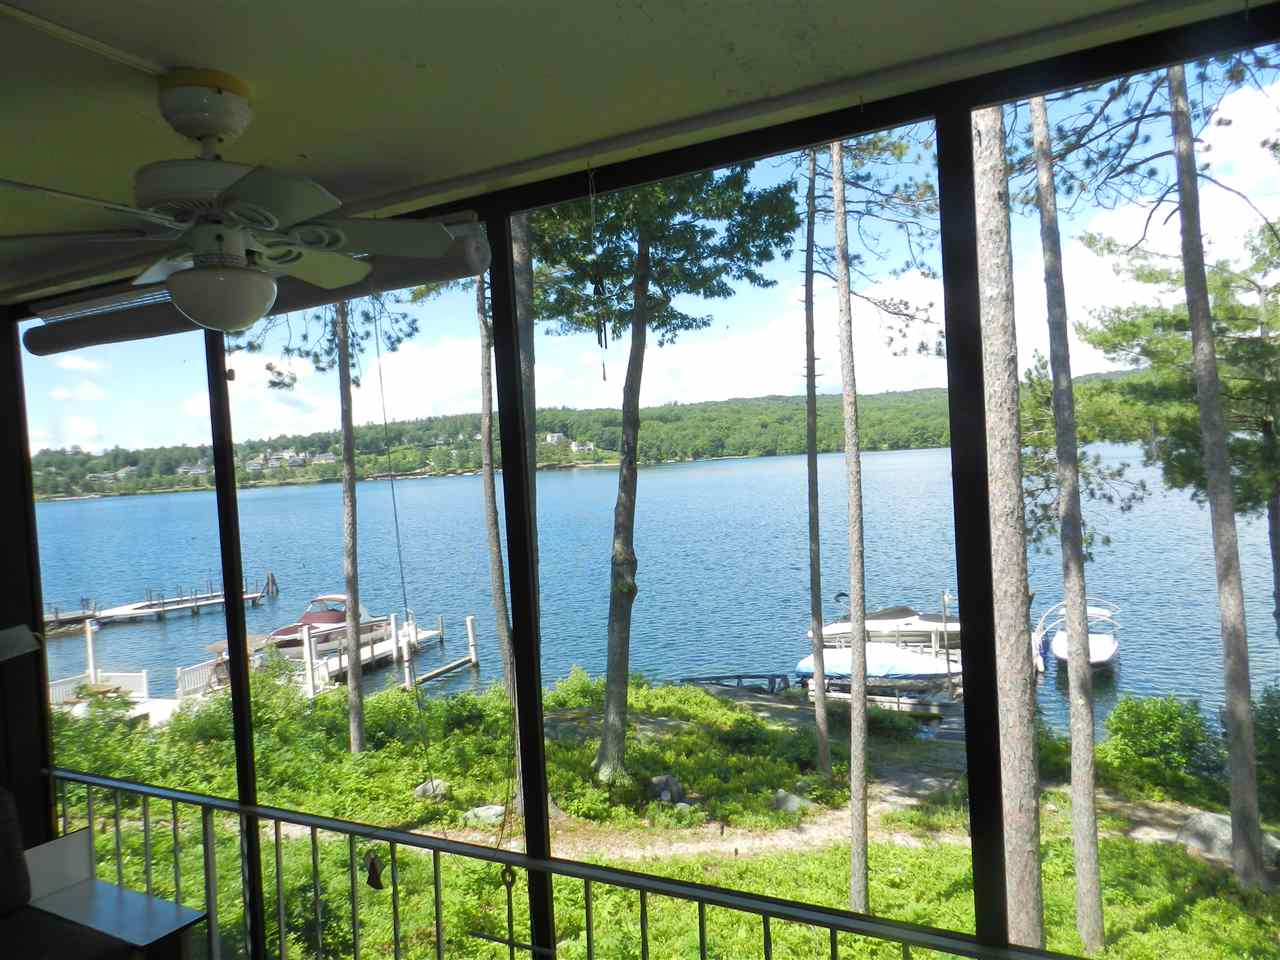 766 Weirs Boulevard 5, Laconia, NH 03246